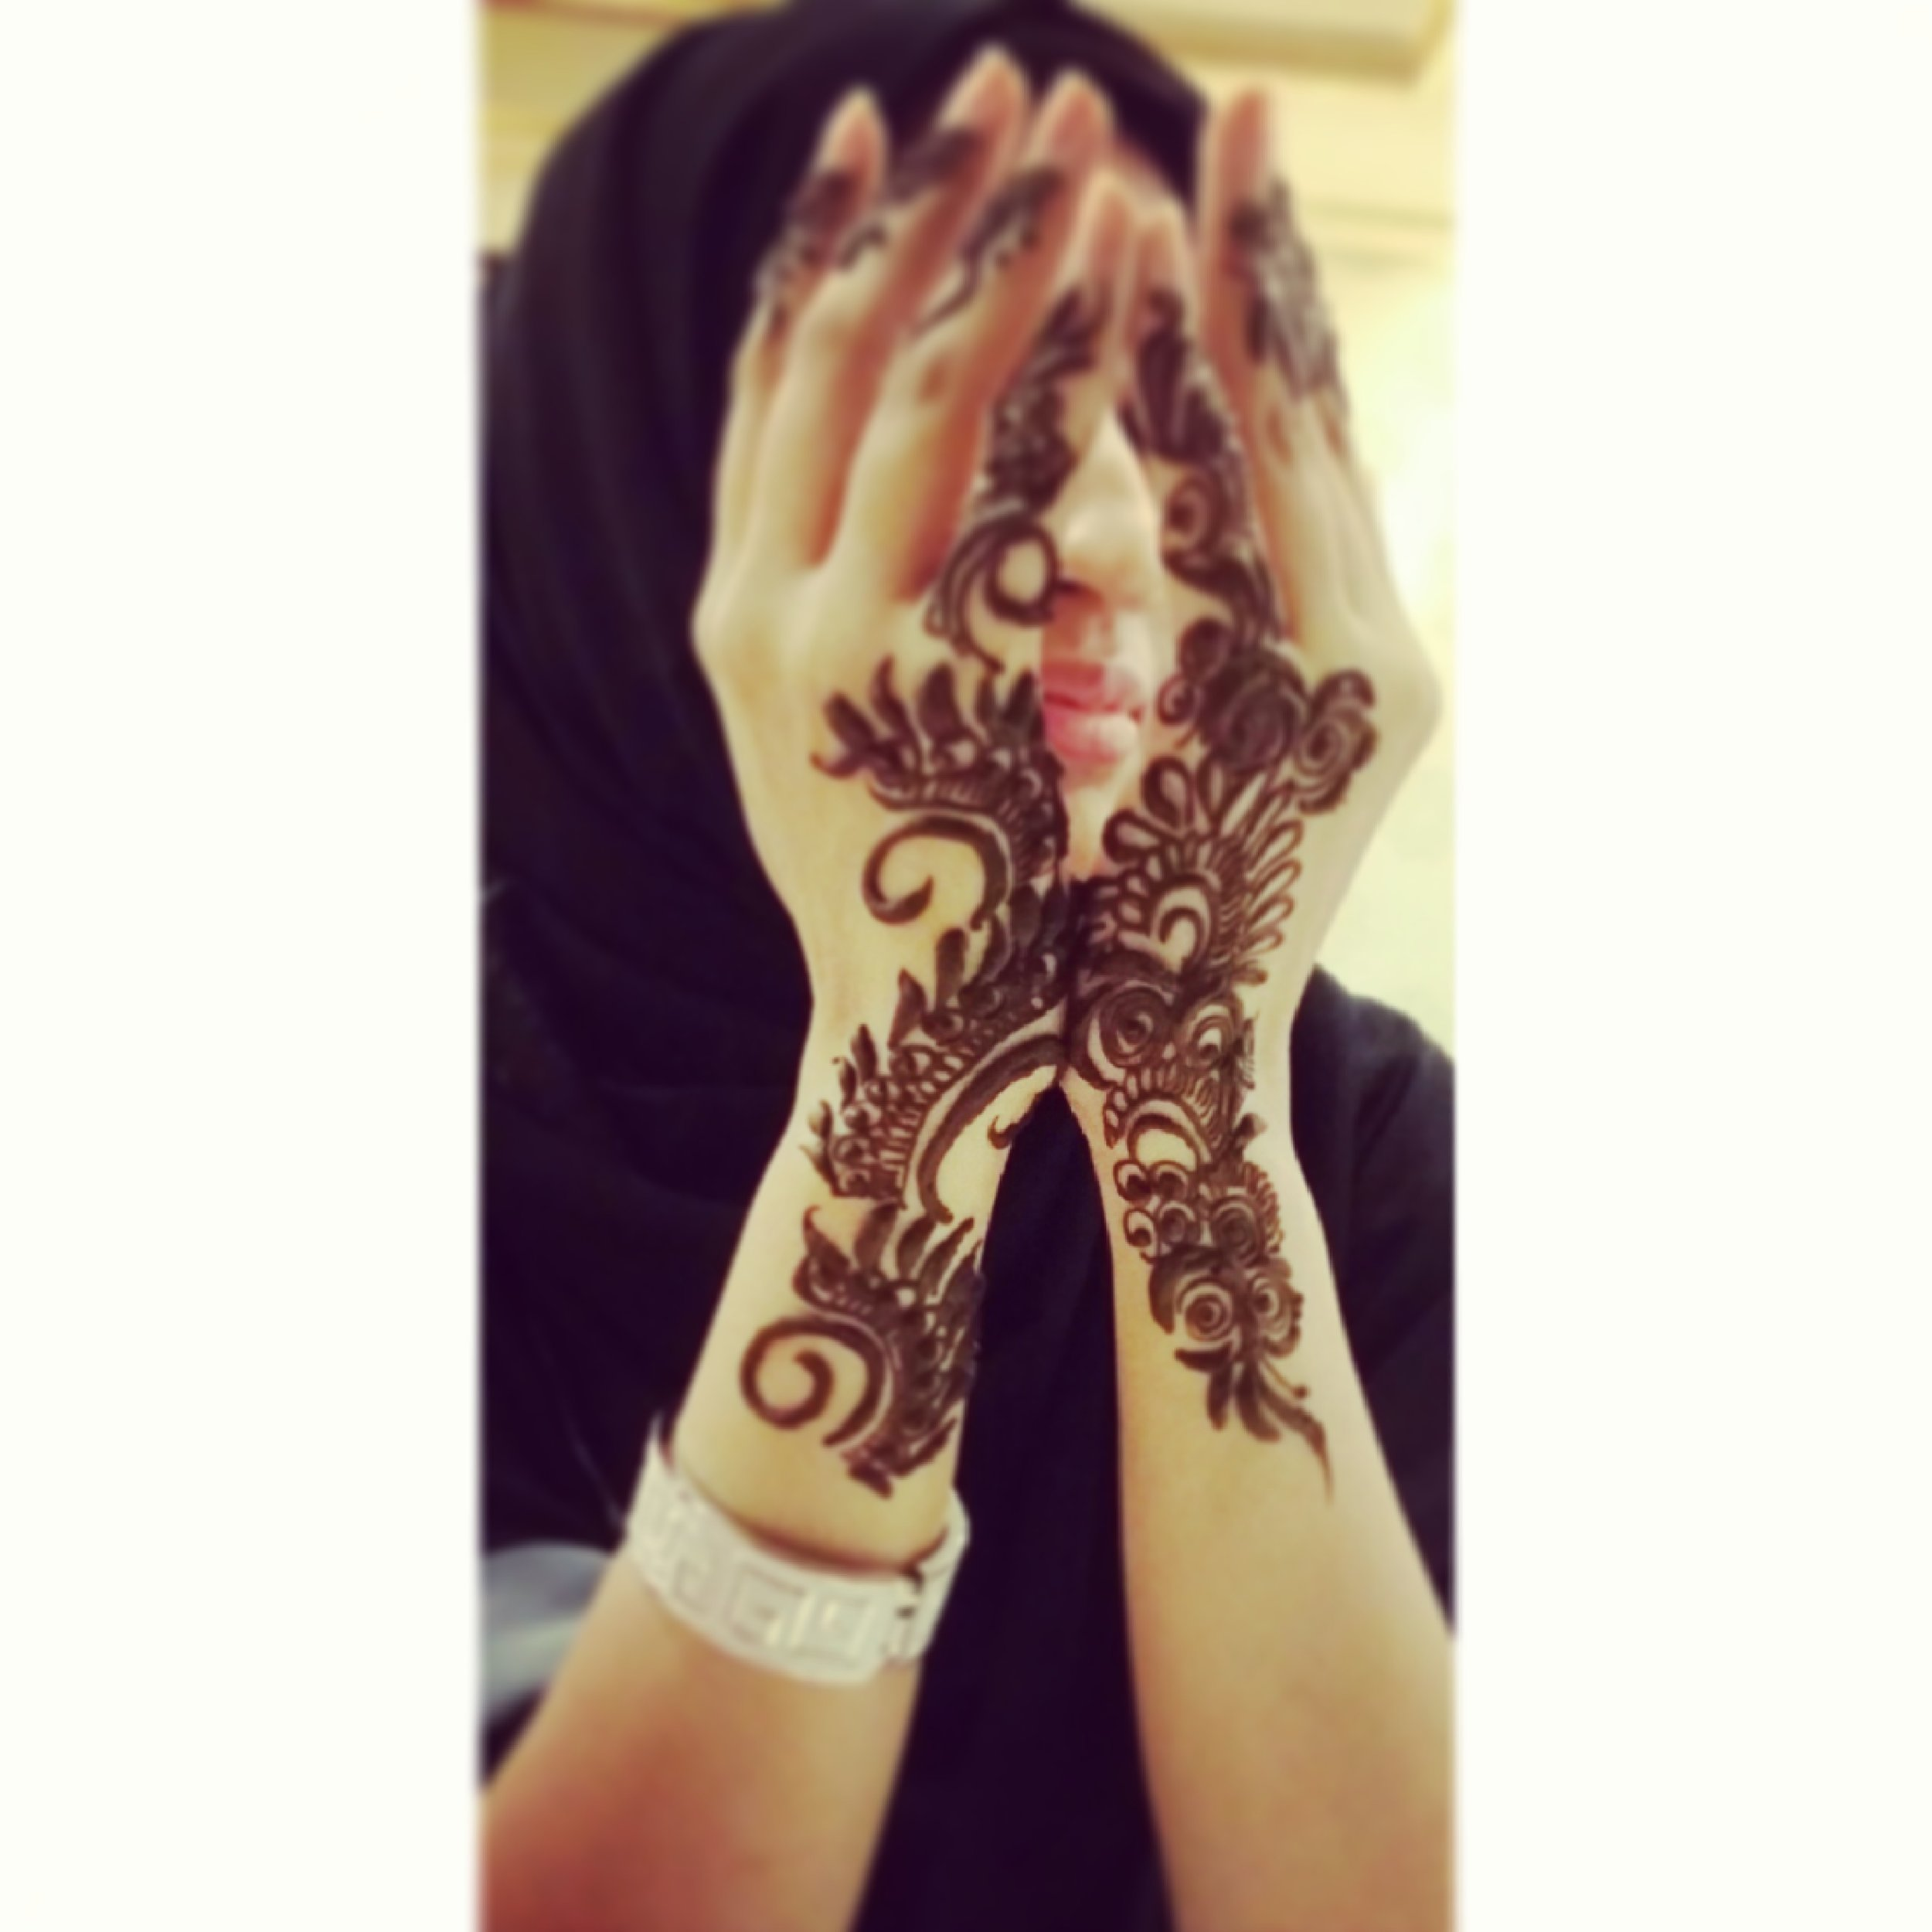 A finale to my hardwork with awesome Henna on my hands